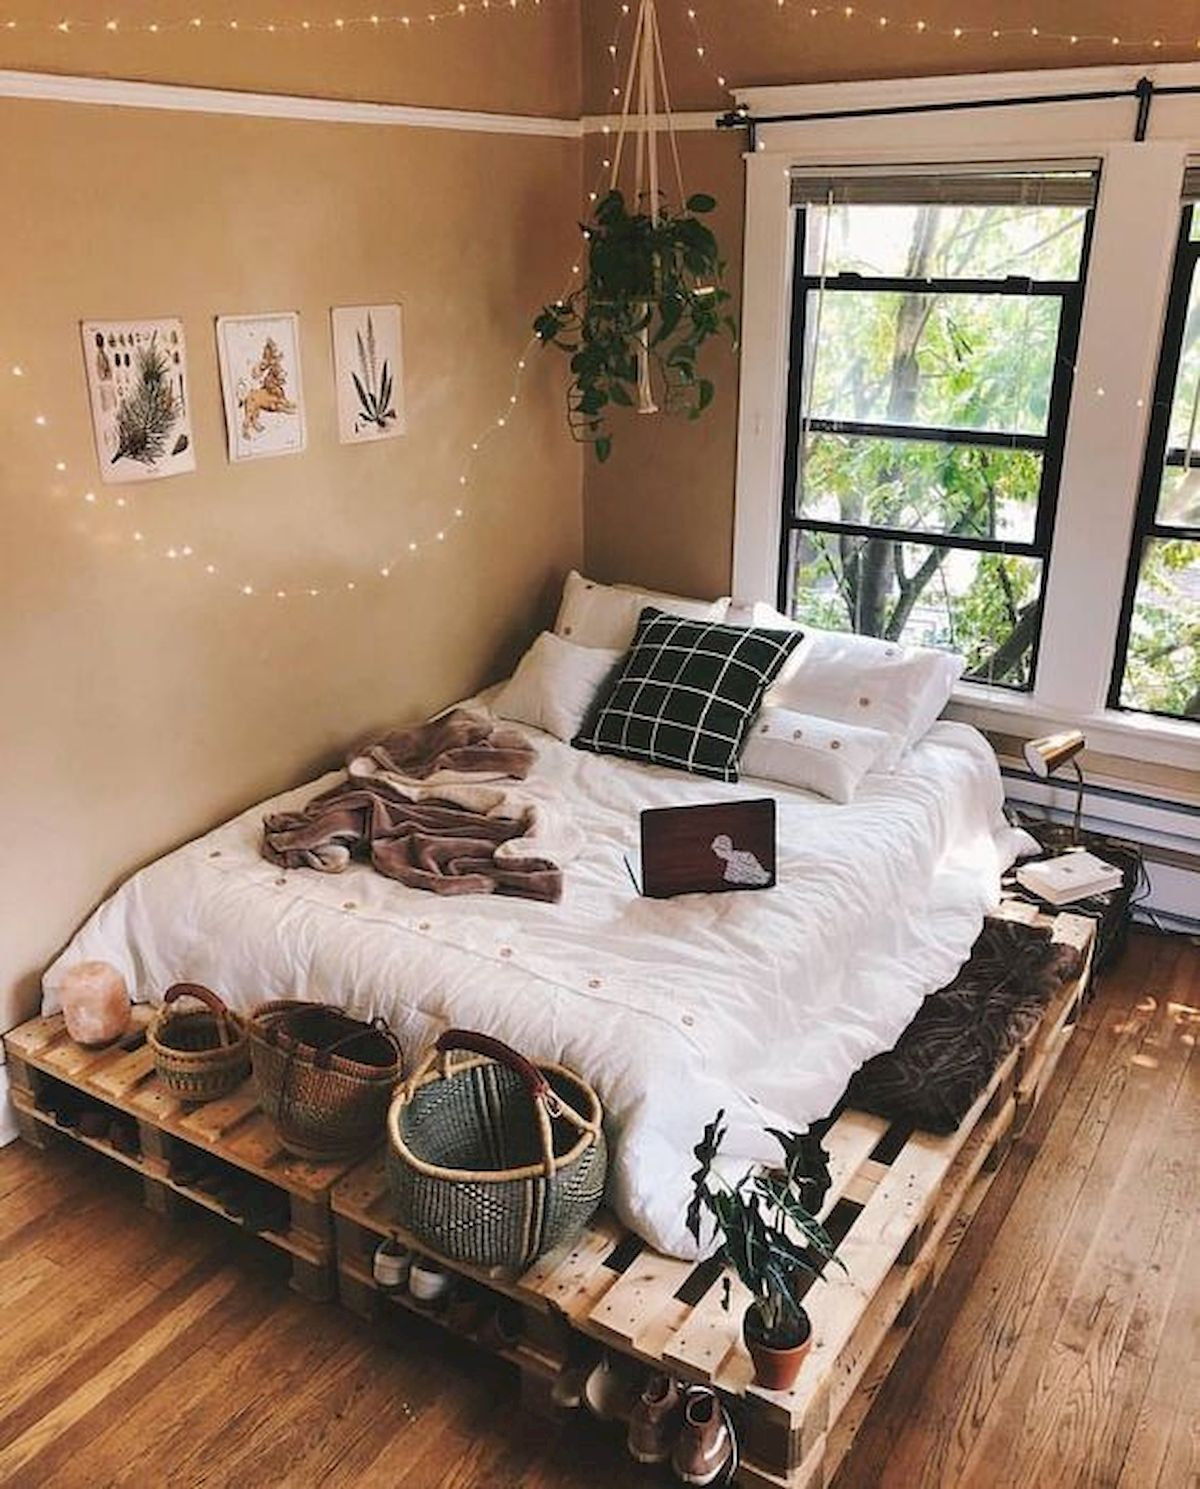 Diy Rustic Bedroom Set Plans Soon: 50 Creative Recycled DIY Projects Pallet Beds Design Ideas